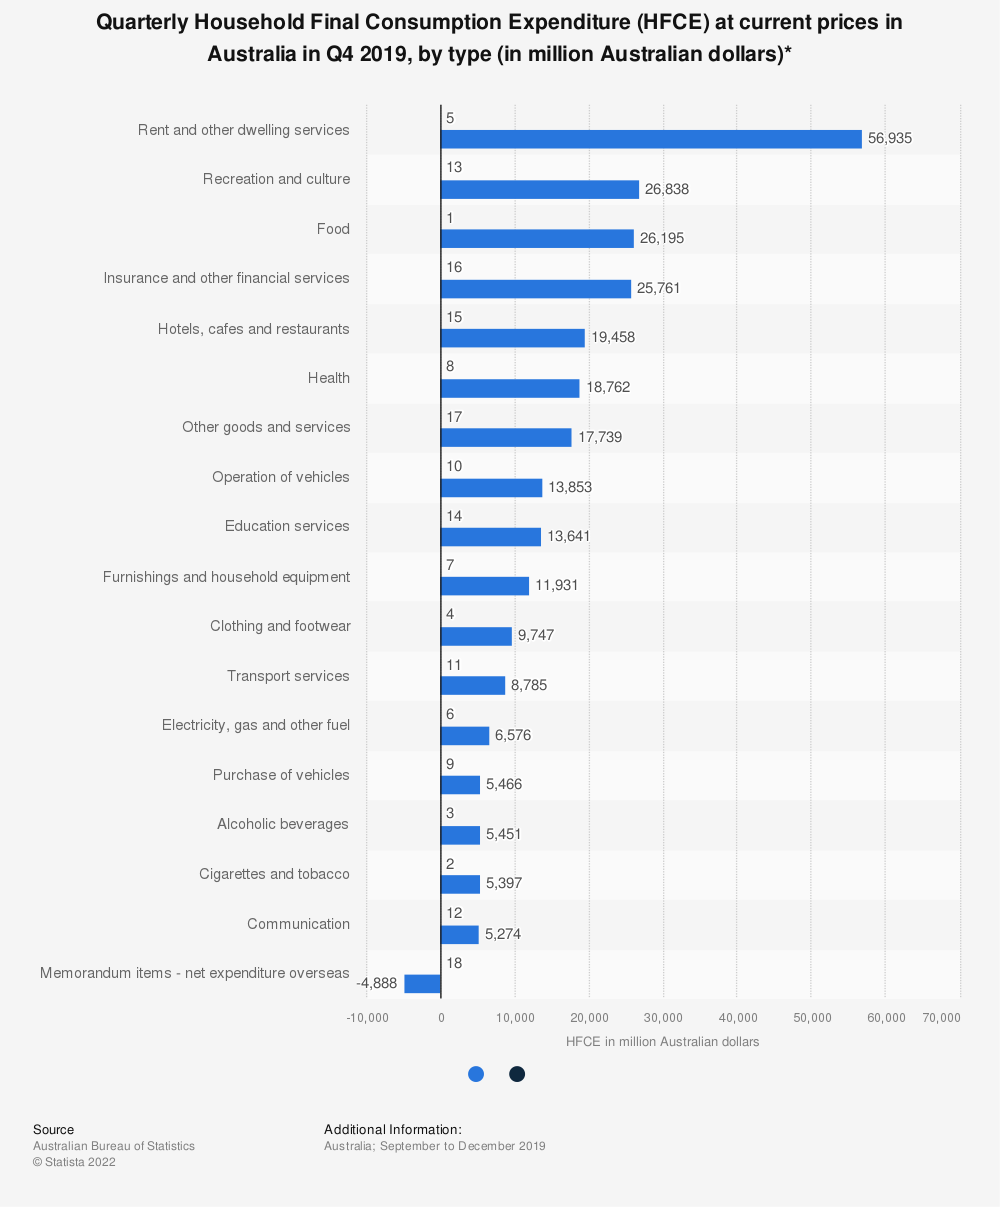 Statistic: Quarterly Household Final Consumption Expenditure (HFCE) at current prices in Australia in Q4 2019, by type (in million Australian dollars)* | Statista